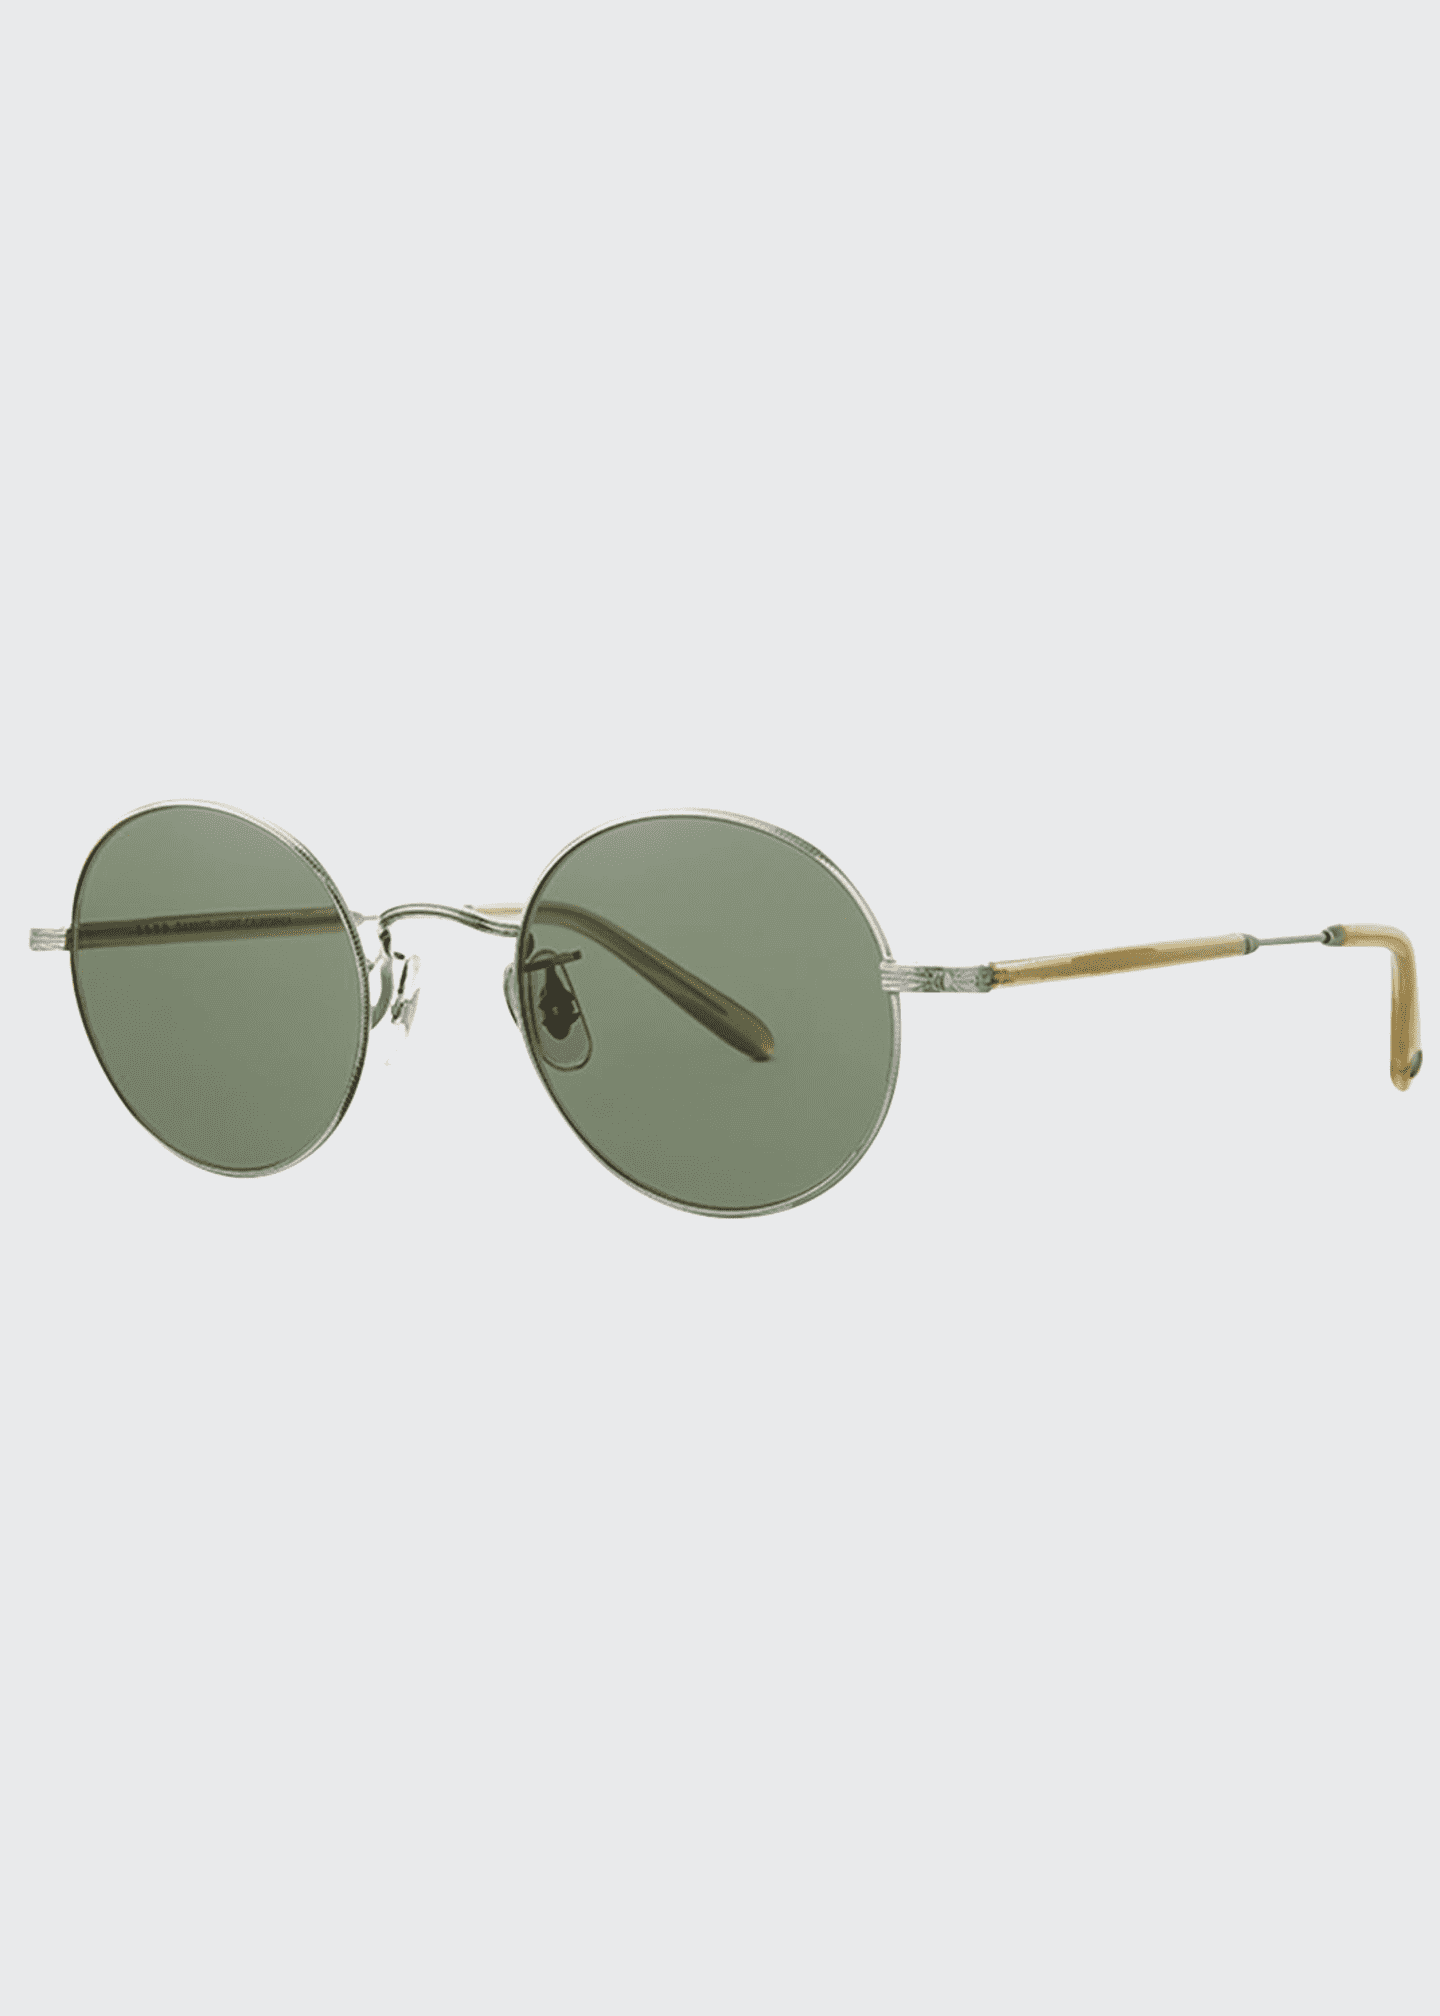 Image 1 of 2: Men's Lovers 46 Round Sunglasses